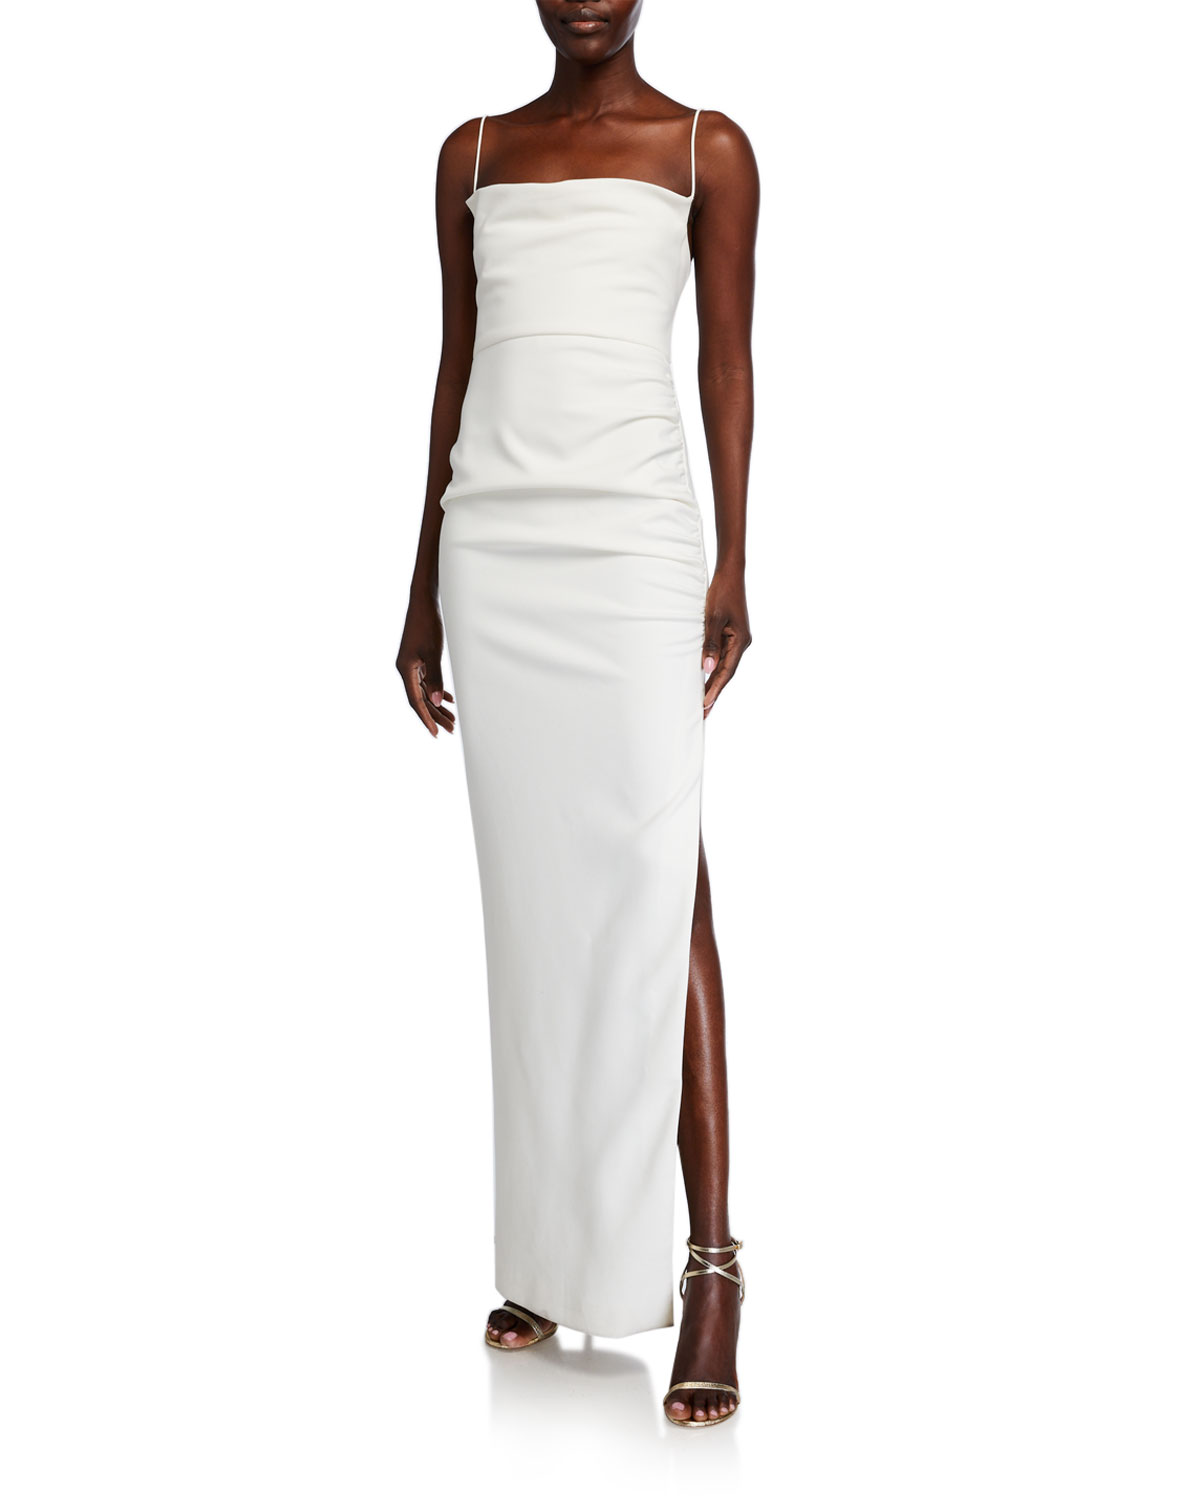 Likely Celida Cowl-Neck Shirred Column Gown